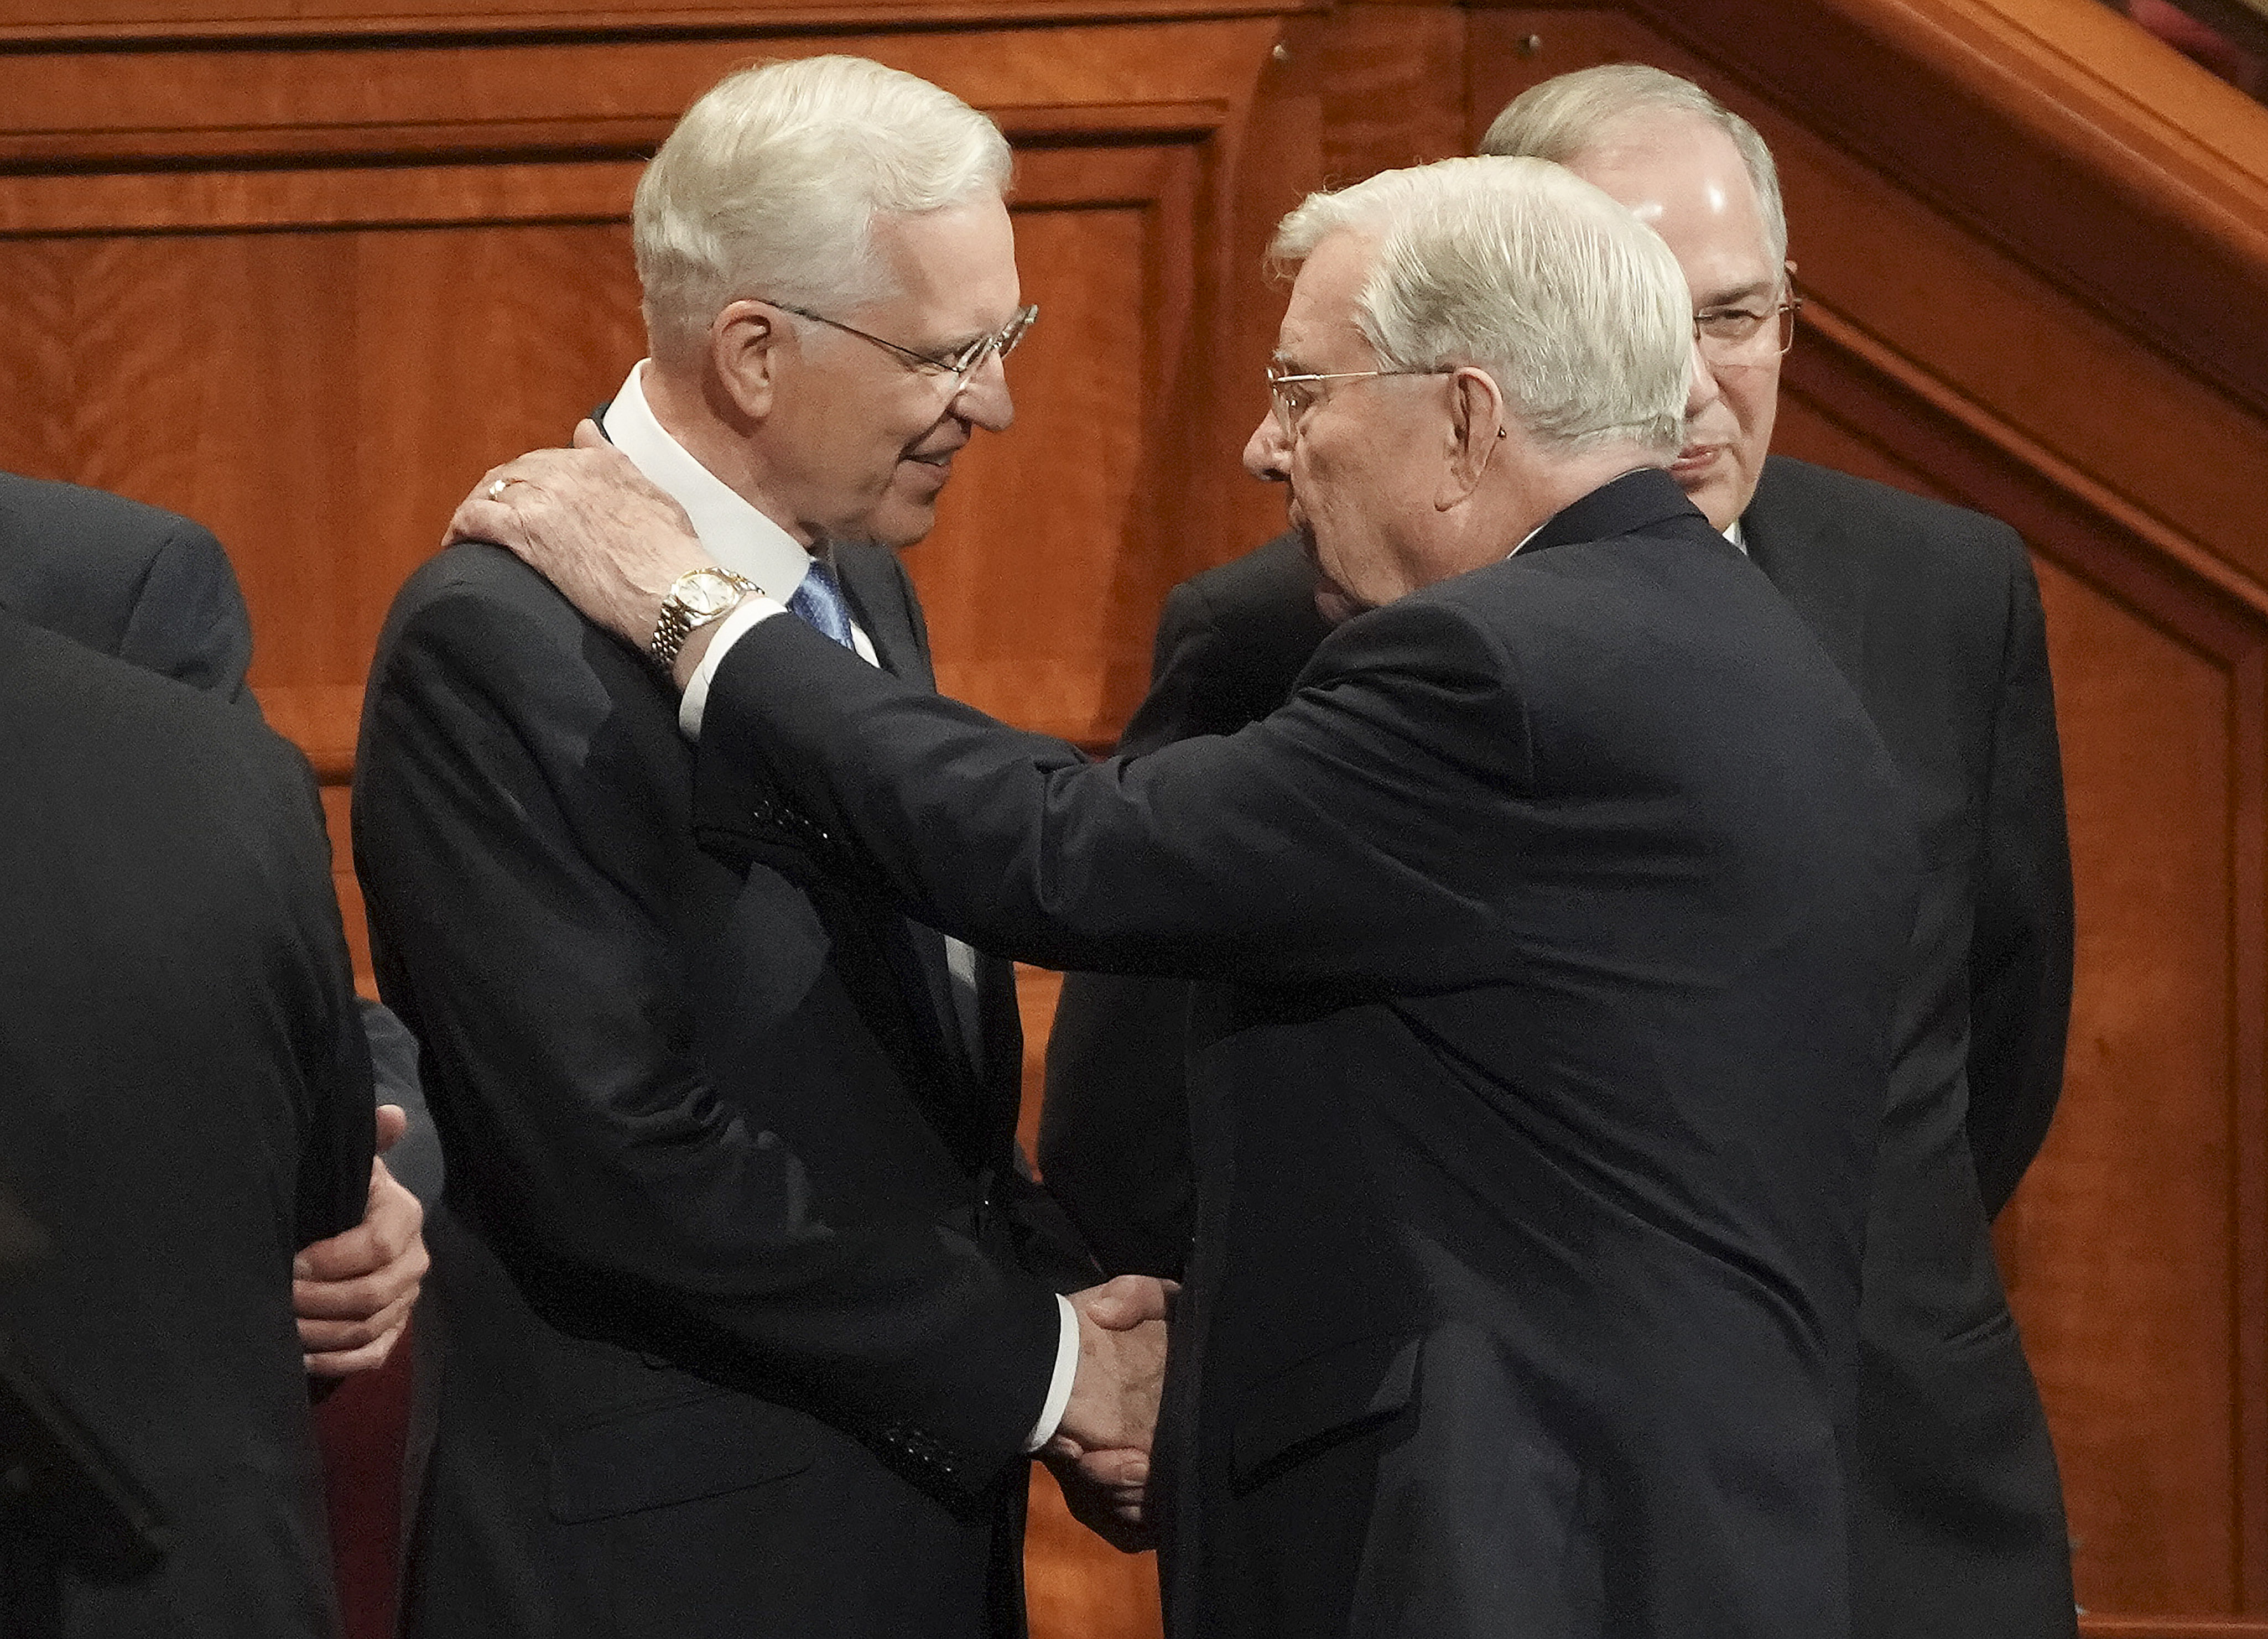 Elder D. Todd Christofferson of the Quorum of the Twelve Apostles and President M. Russell Ballard, acting president of the Quroum of the Twelve Apostles, greet prior to the Saturday morning session of the 189th Semiannual General Conference of The Church of Jesus Christ of Latter-day Saints in the Conference Center in Salt Lake City on Saturday, Oct. 5, 2019.